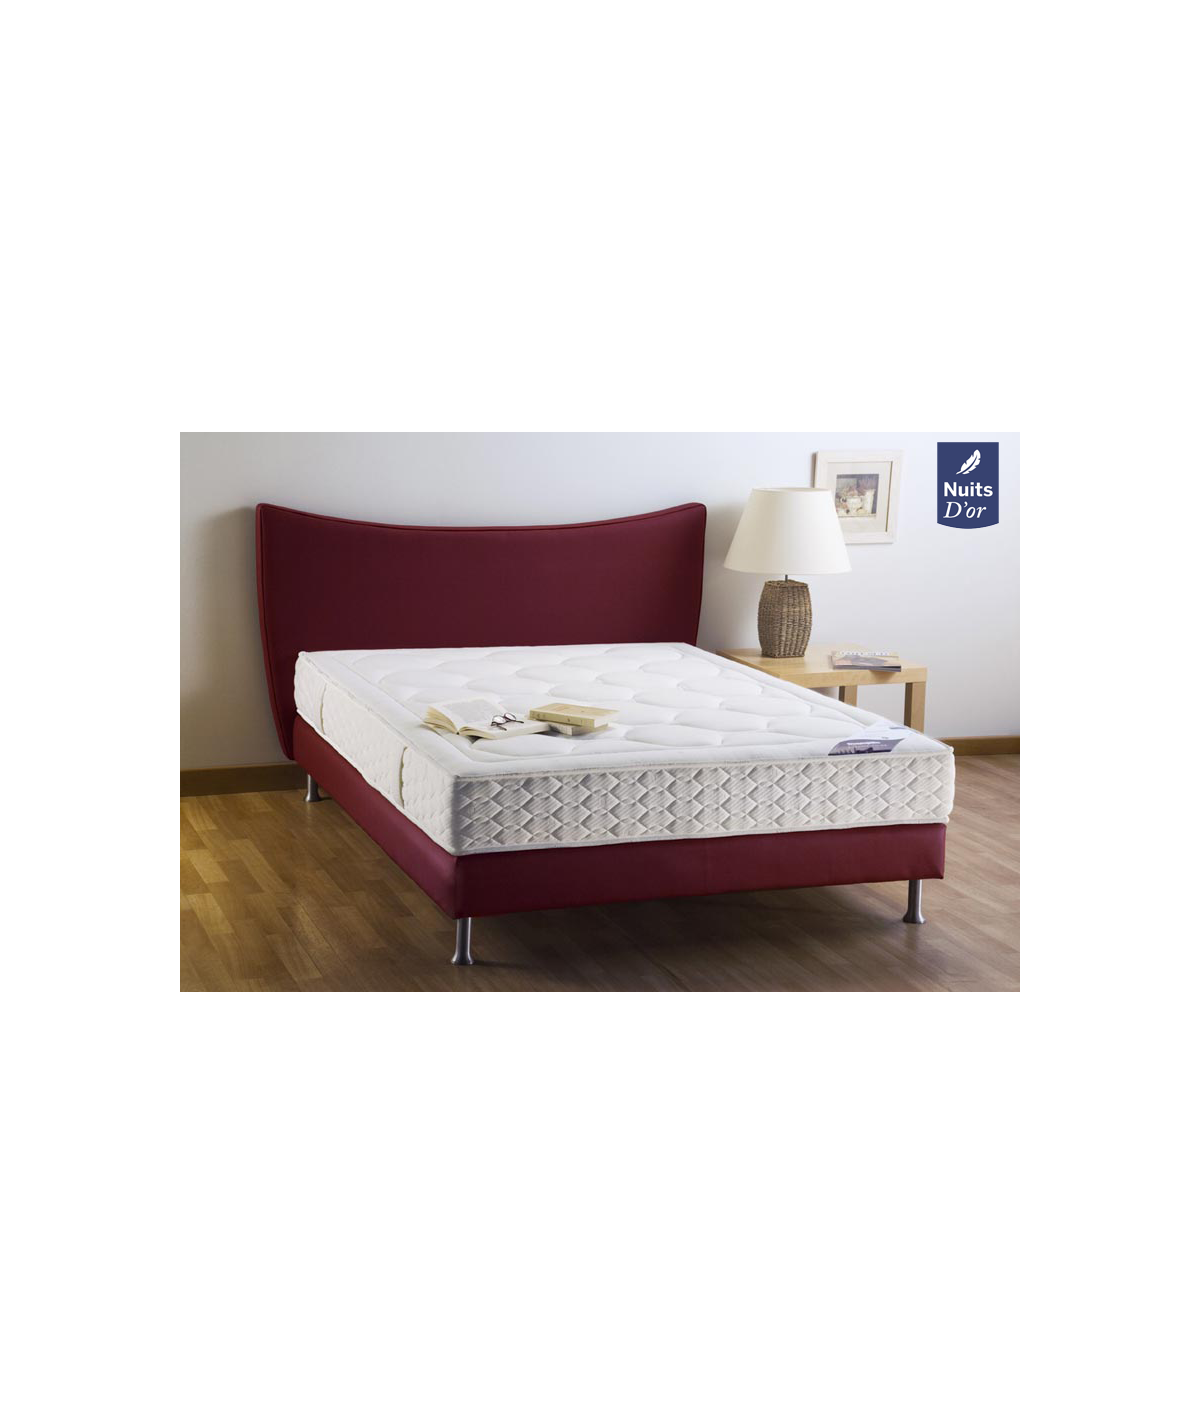 Goodnight Mattress 70x190 Density 35 Kg / m3 - Height 21 Cm - Firm Support - Orthopedic